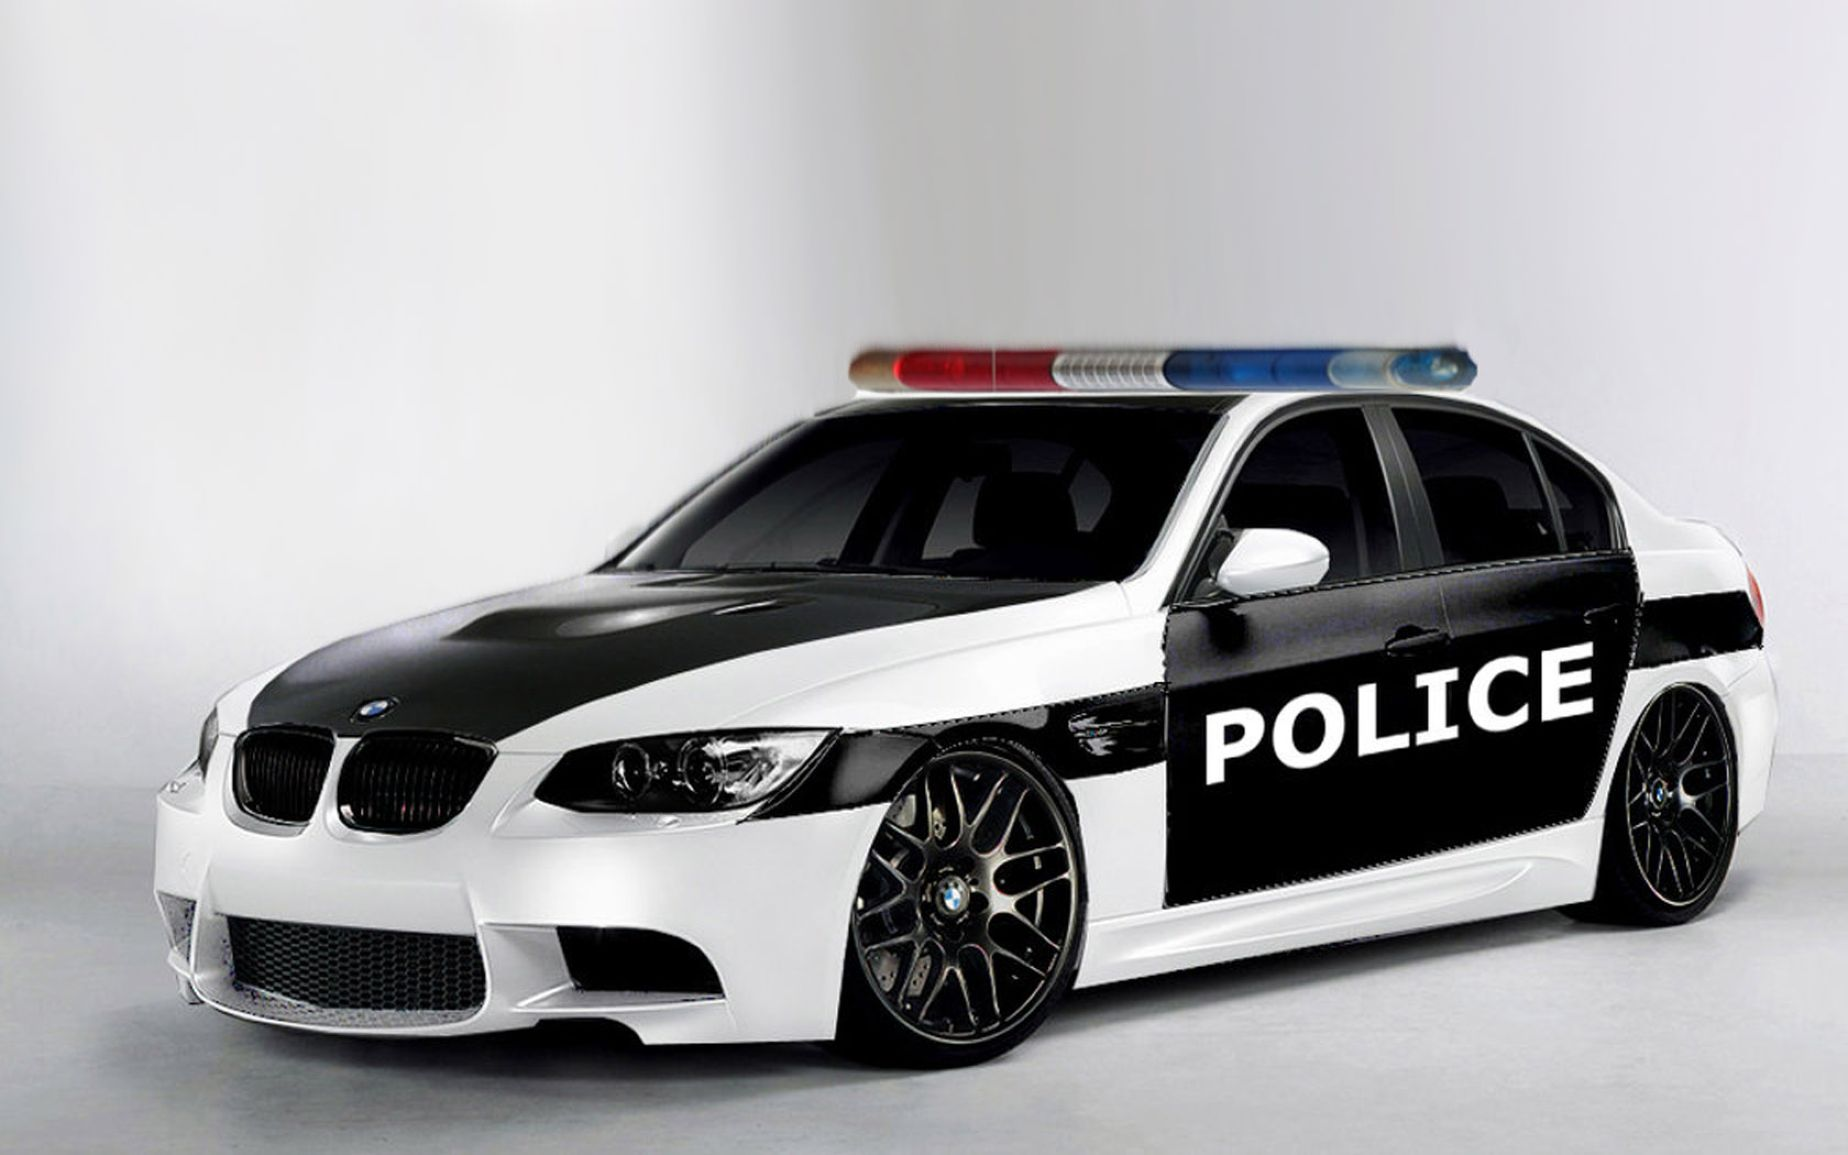 3d bmw m3 police car wallpaper: desktop hd wallpaper - download free